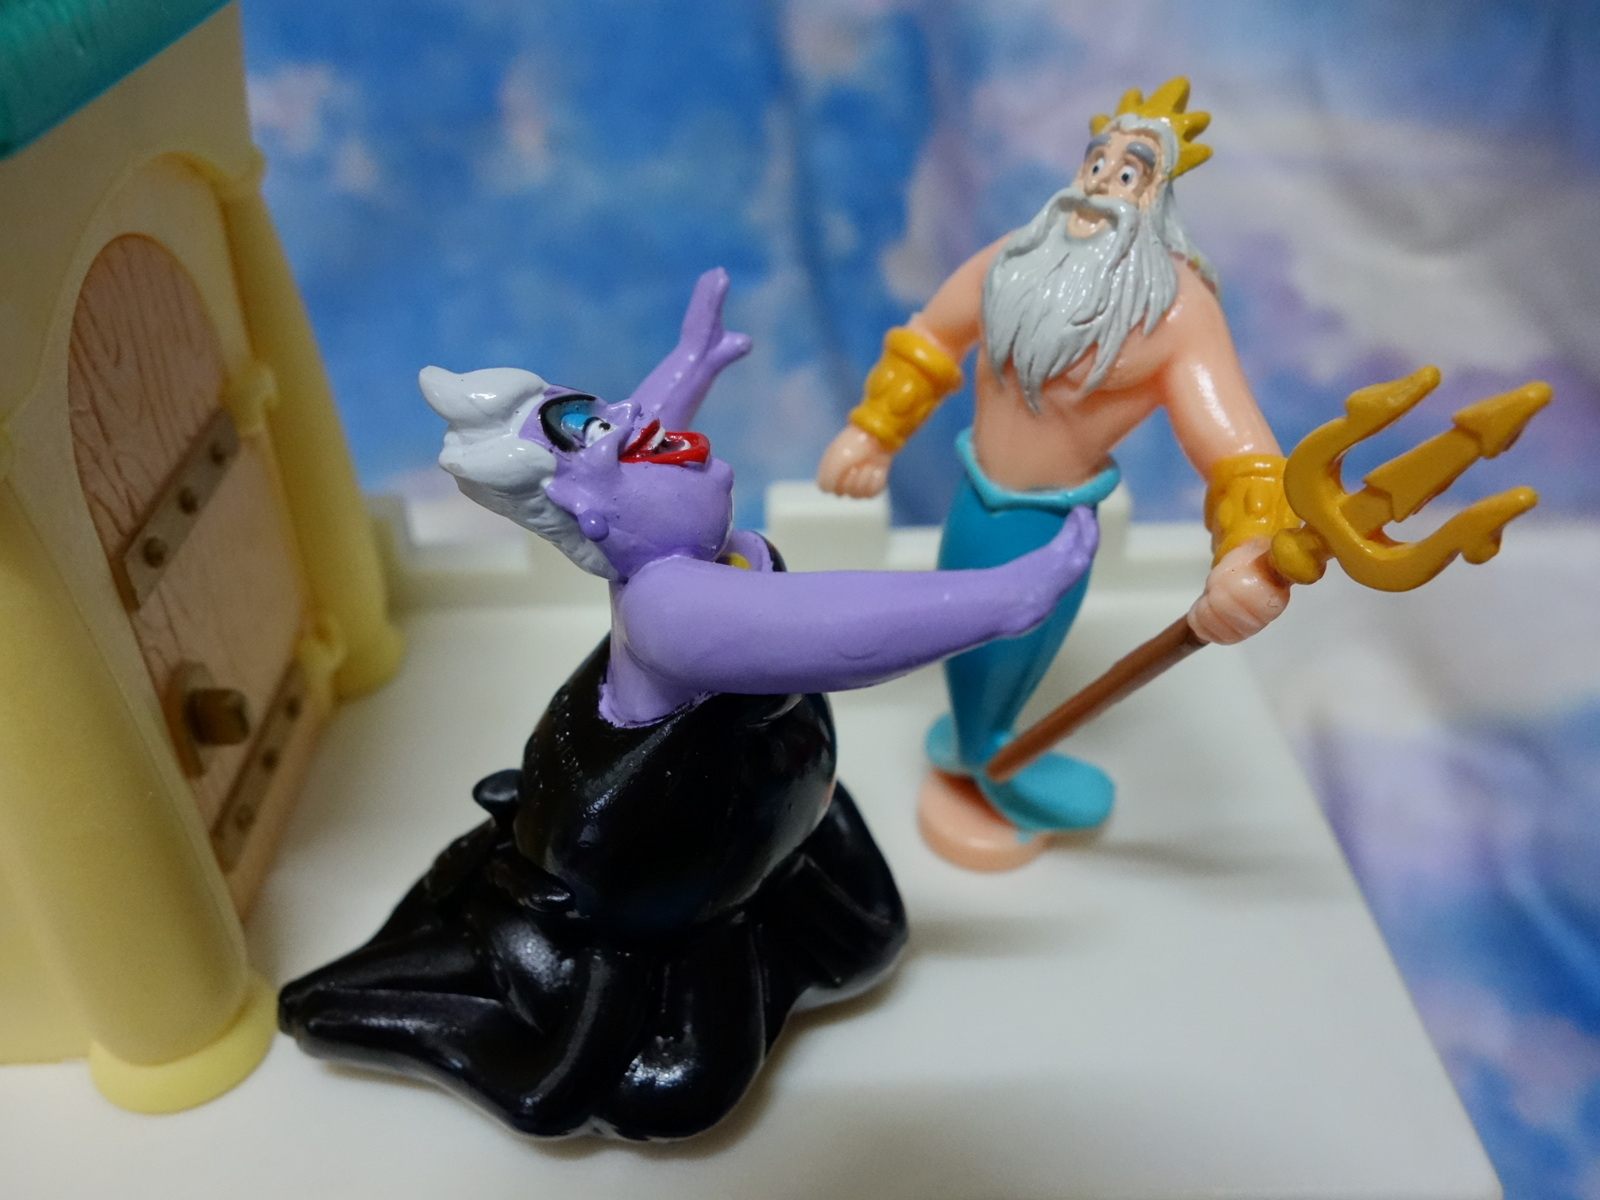 ♛ Just for fun :-): ♛迪士尼: 小美人魚系列公仔 2002 DISNEY PRINCESS THE LITTLE MERMAID FIGURE PACK